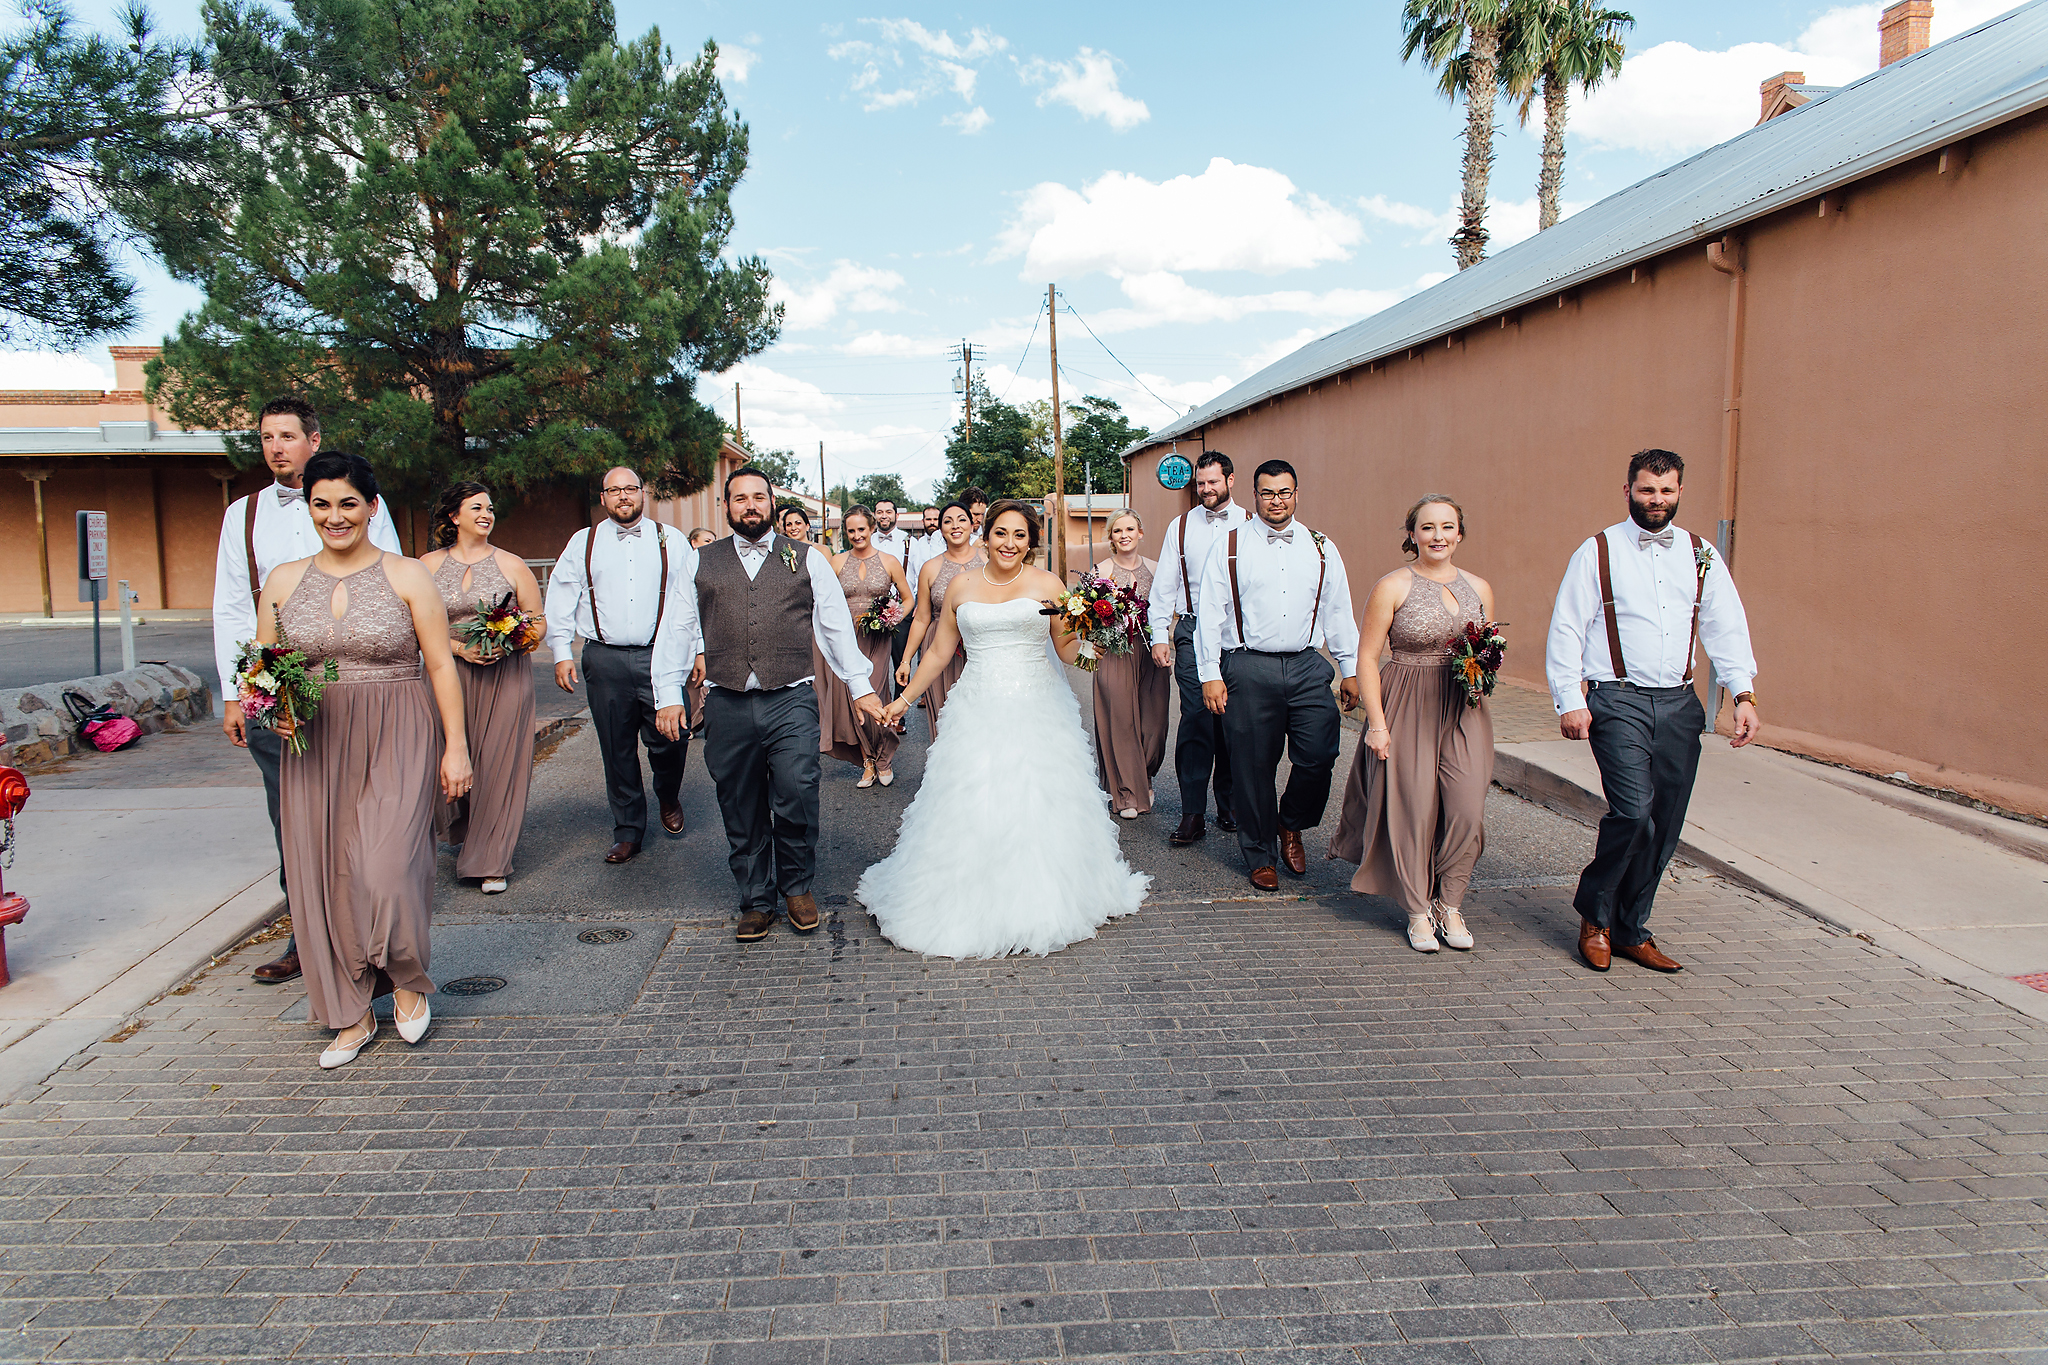 taylord-photography-las-cruces-weddings-097.jpg